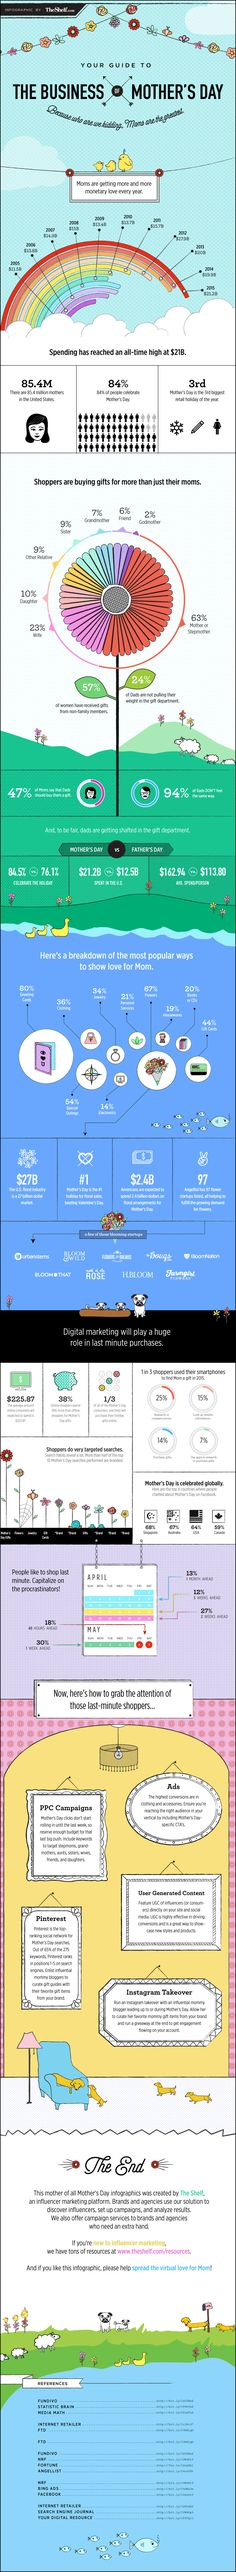 The Business of Mother's Day #Infographic ~ Visualistan